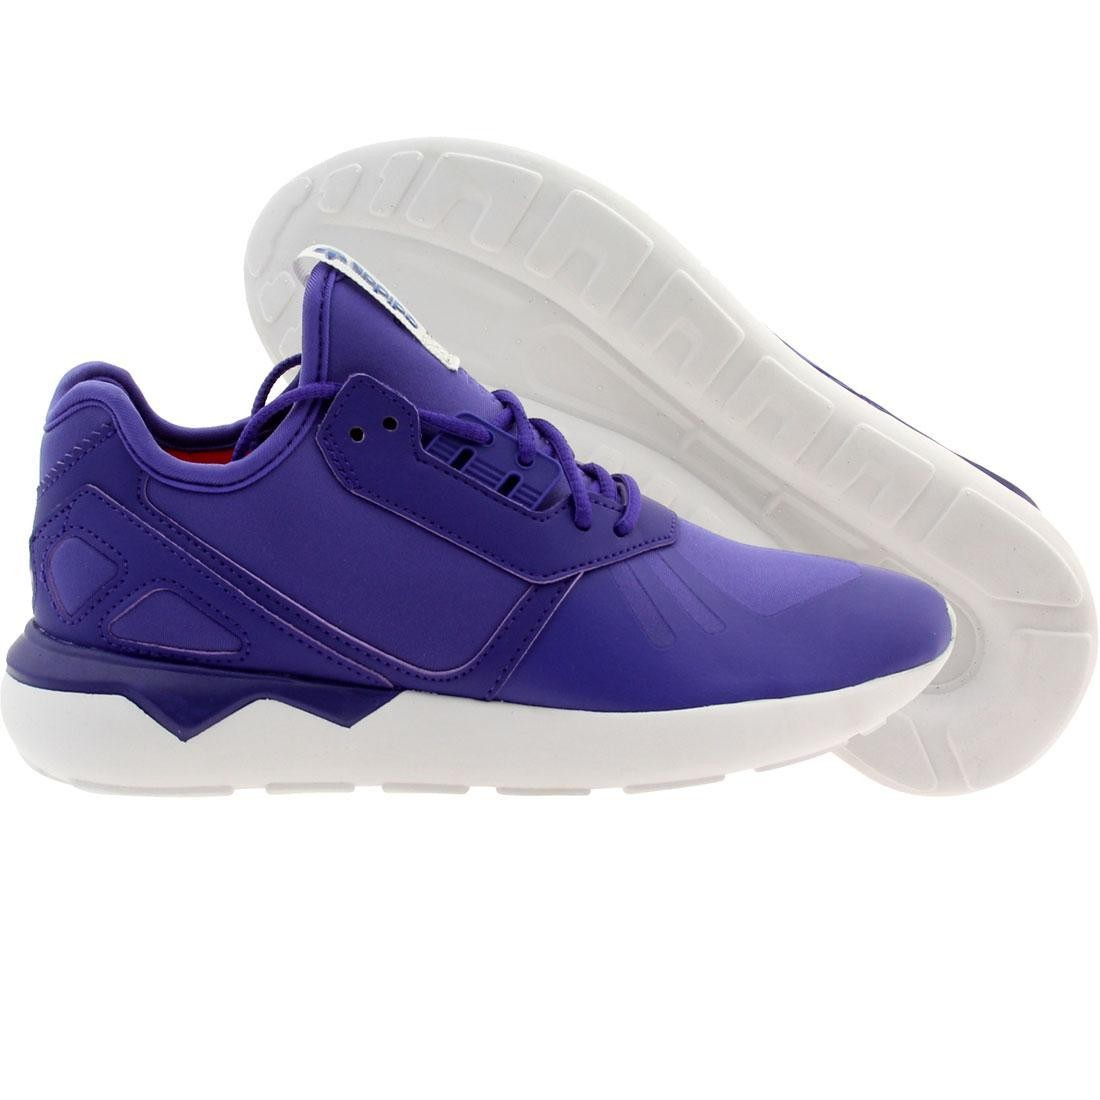 quality design 02bf5 2c989 Adidas Big Kids Tubular Runner purple ngtfla red